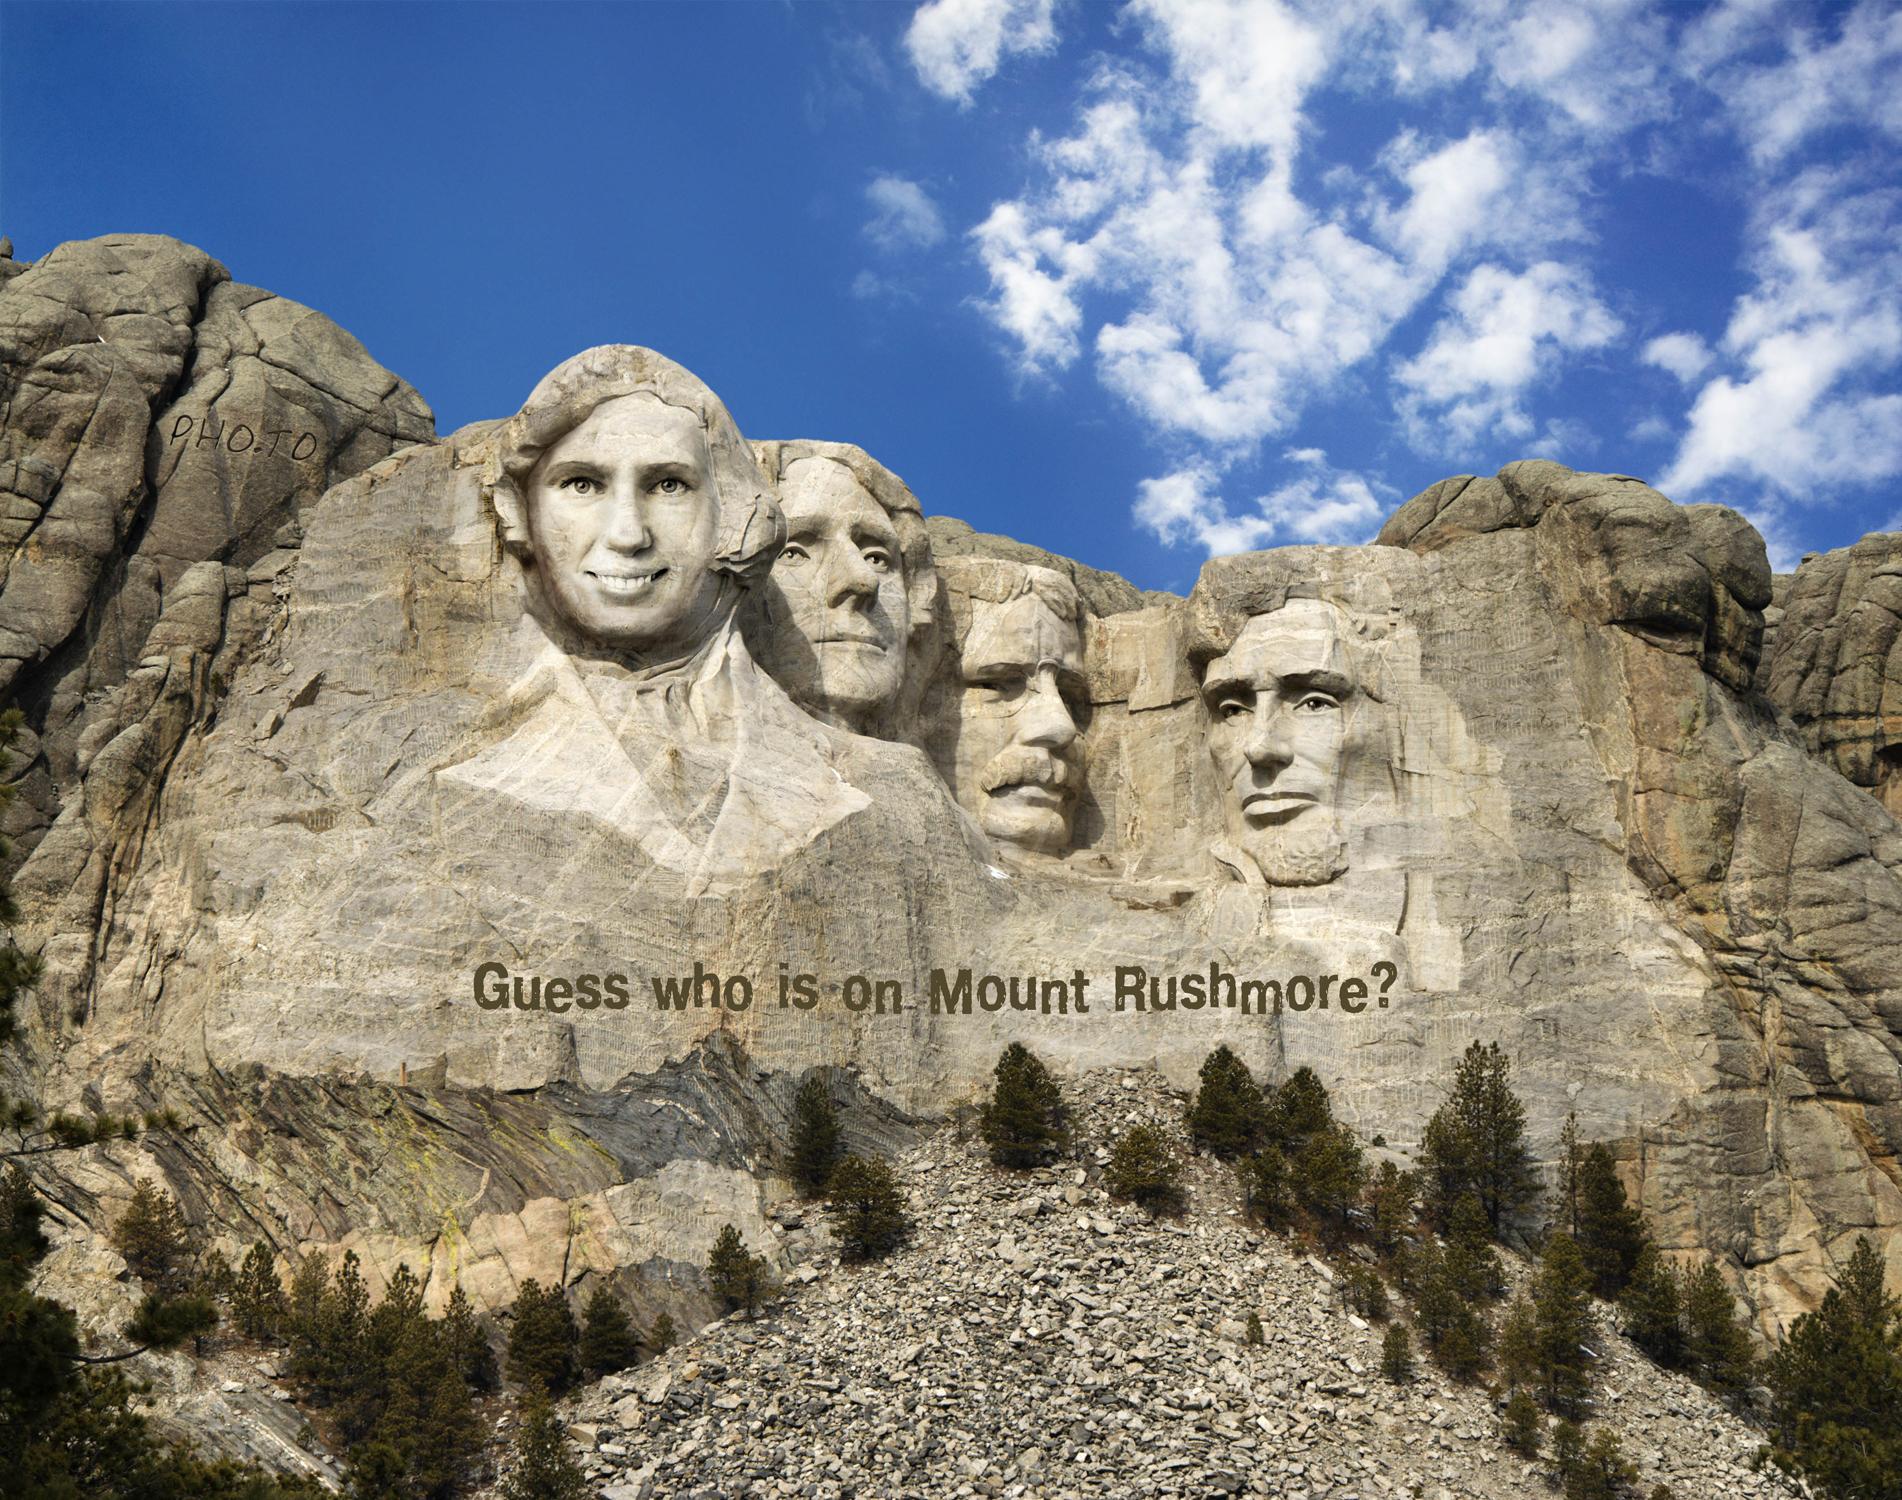 Make Your Own Mount Rushmore Online With Face In Hole Effect